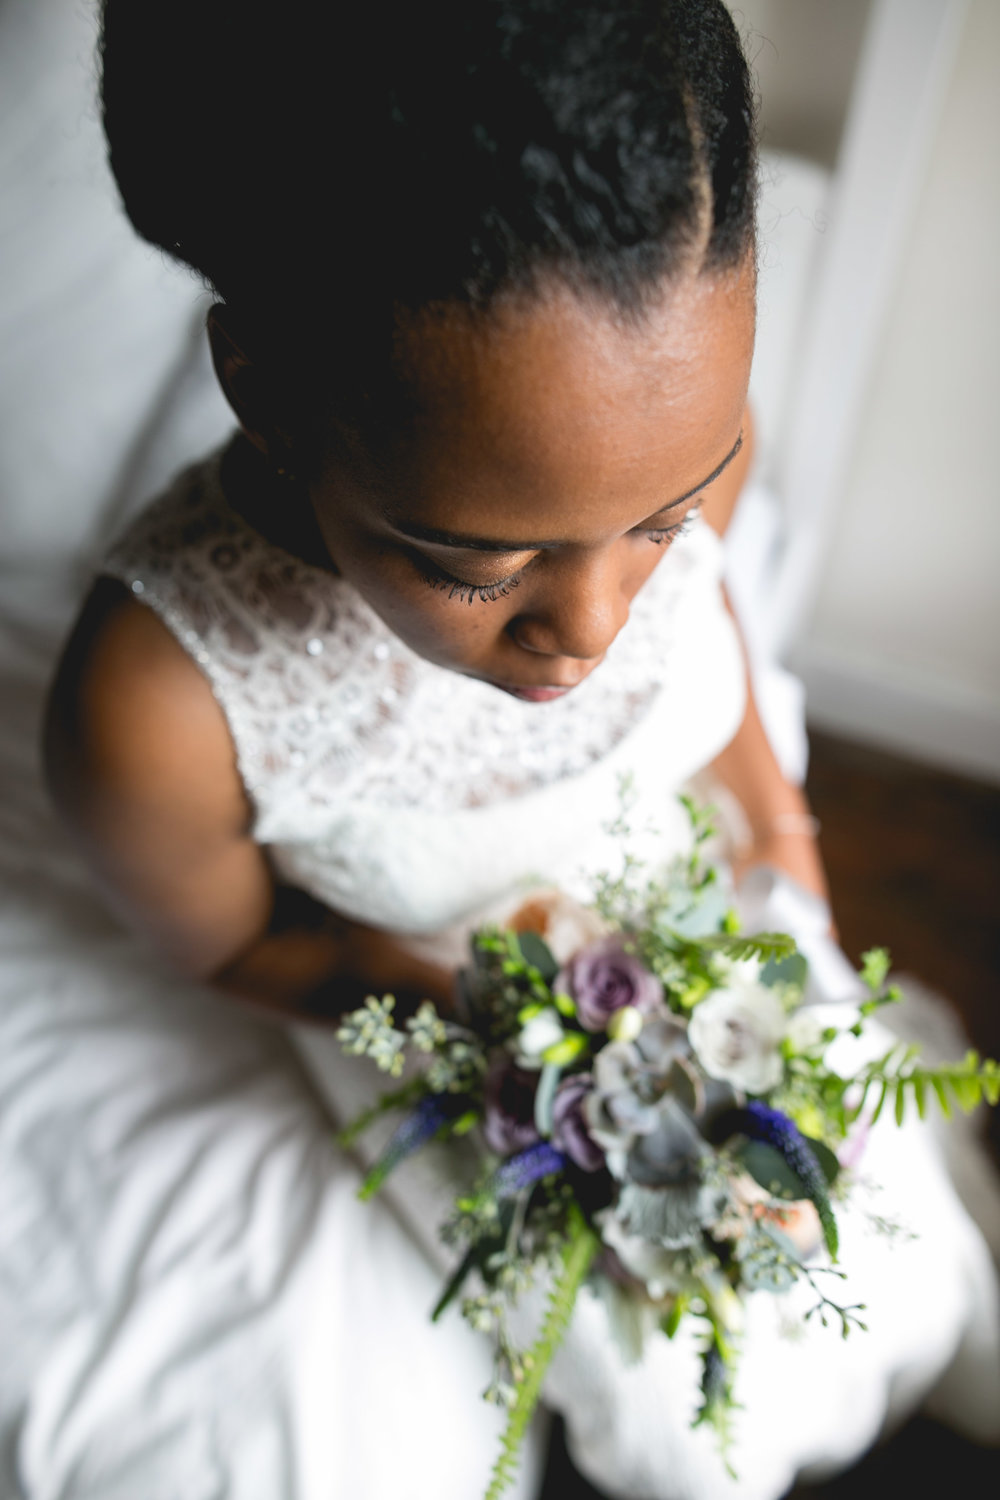 A Philadelphia Fishtown Skybox Wedding by Lesbian Photographer Swiger Photographer.  Monet and Daniel - an industrial fall Philly Wedding